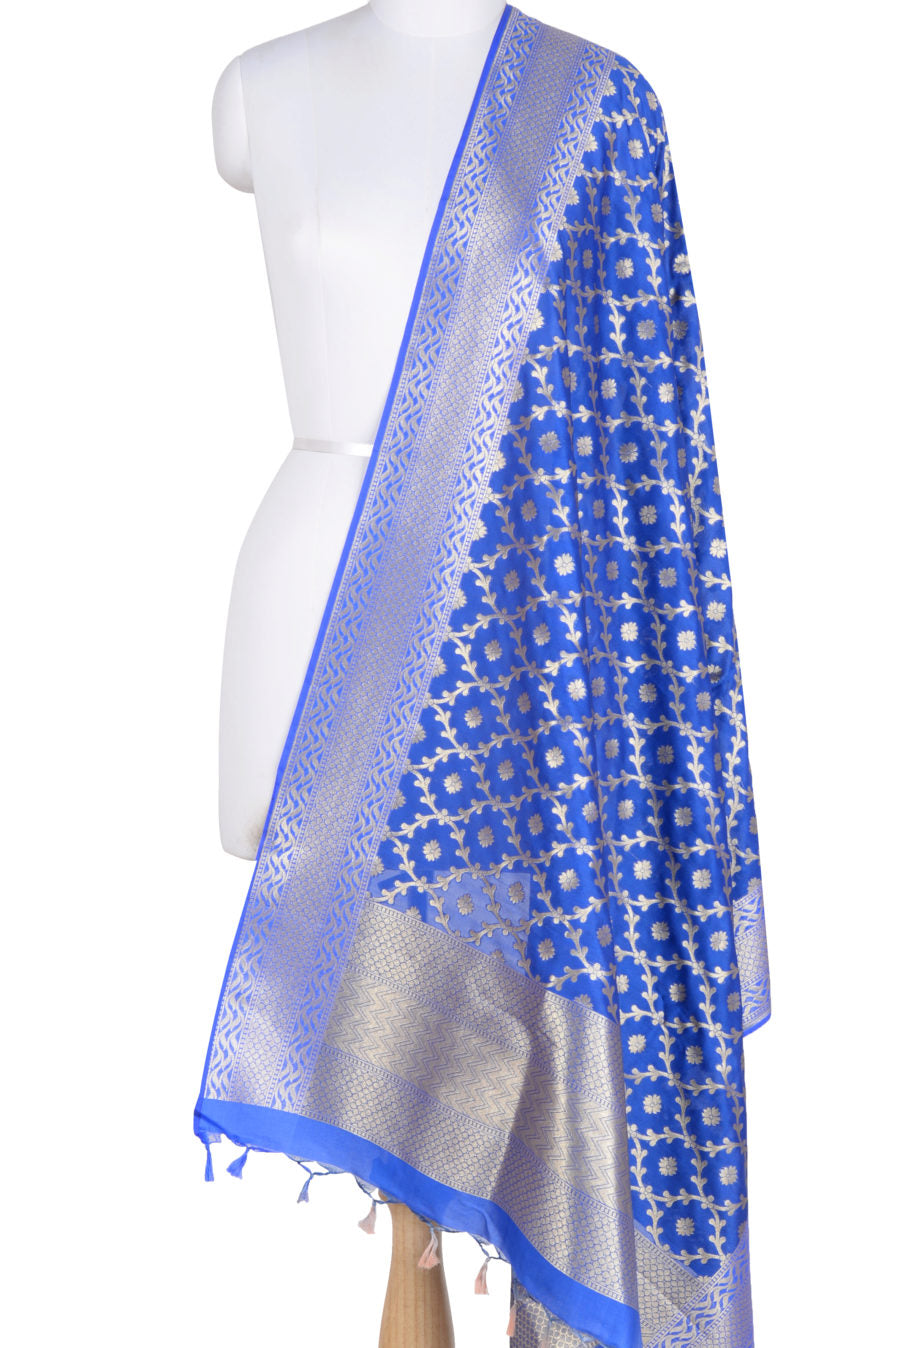 Blue Banarasi Dupatta with mini leaf jaal and floral motifs (1) Main